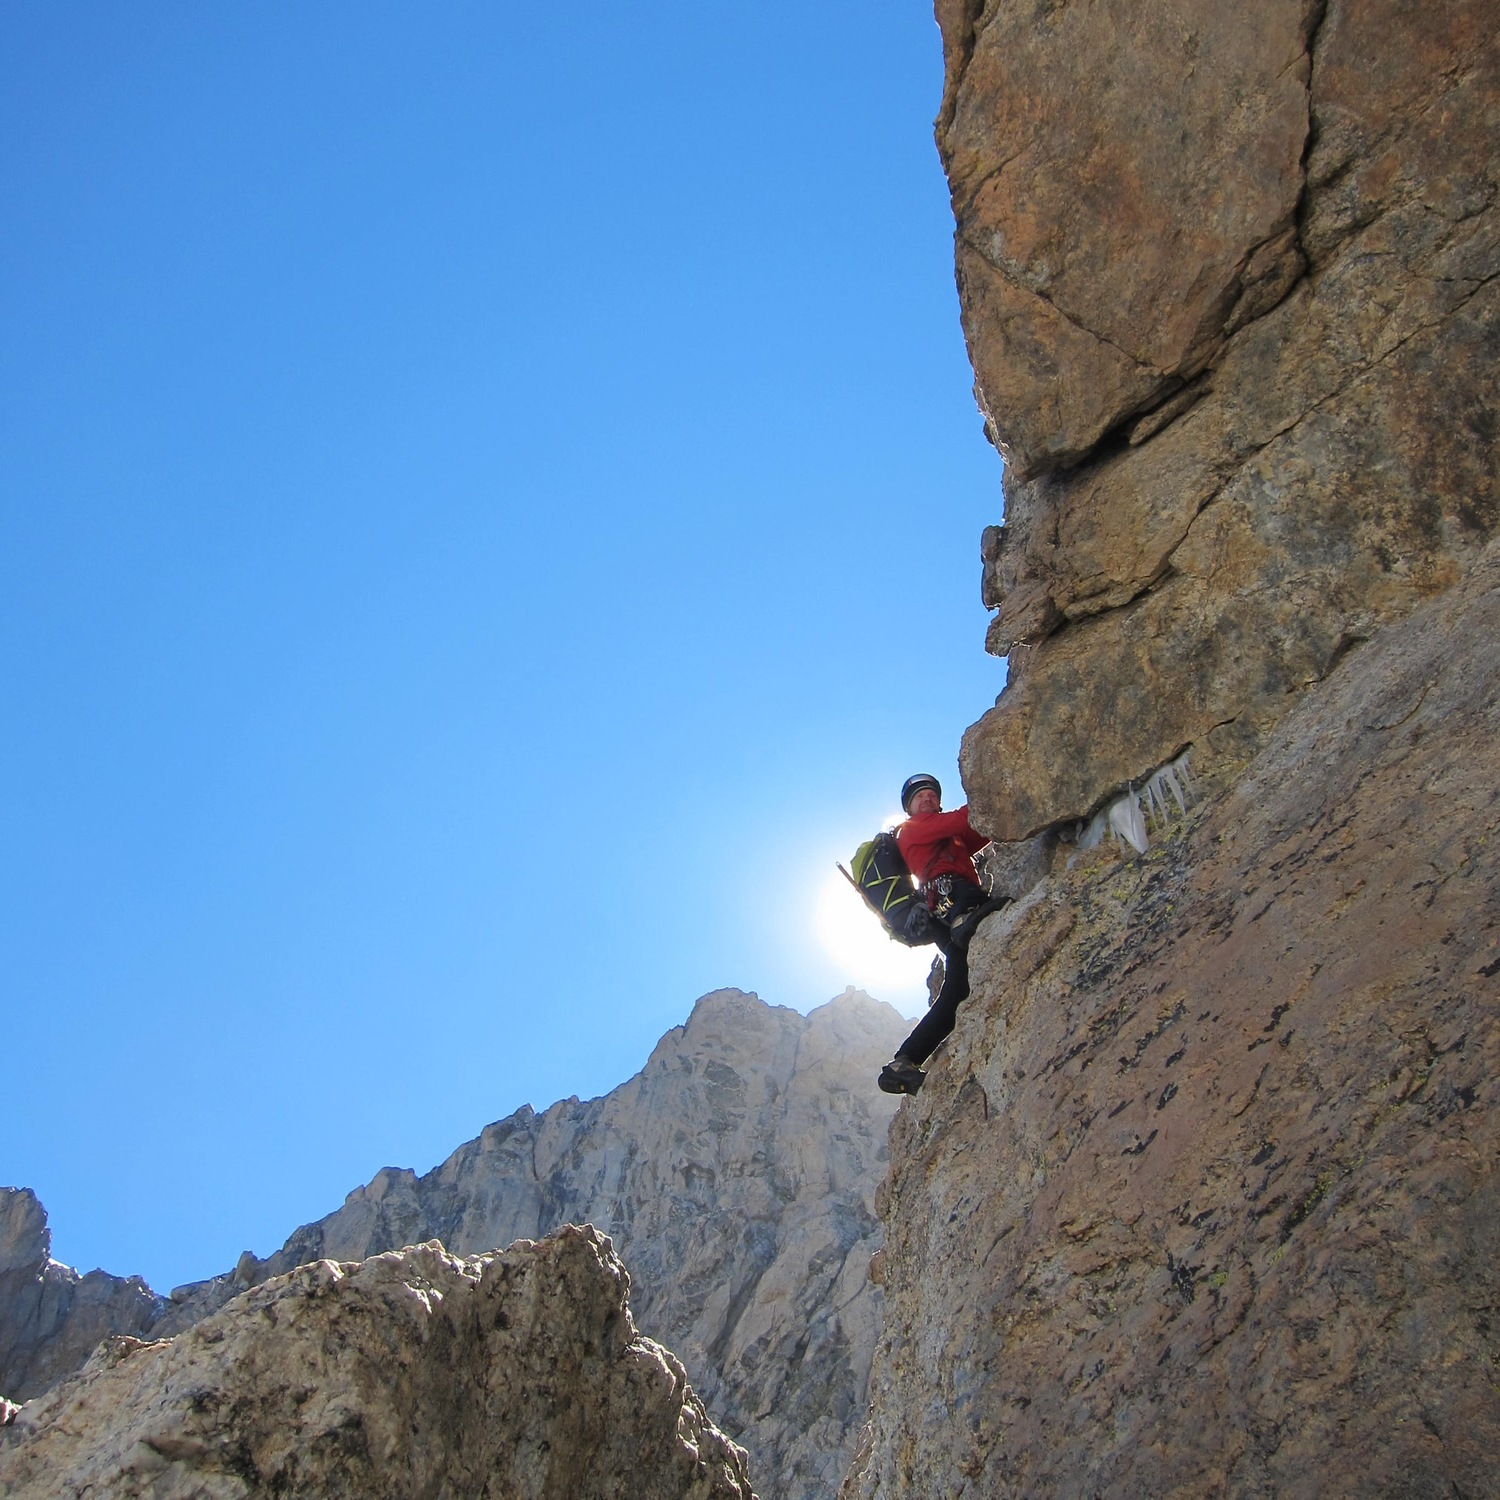 """Jeff leading the second pitch out of the Gunsight, the """"Golden Horn Pitch"""". Rolo describes this as the best pitch of the traverse, and it was pretty awesome!"""